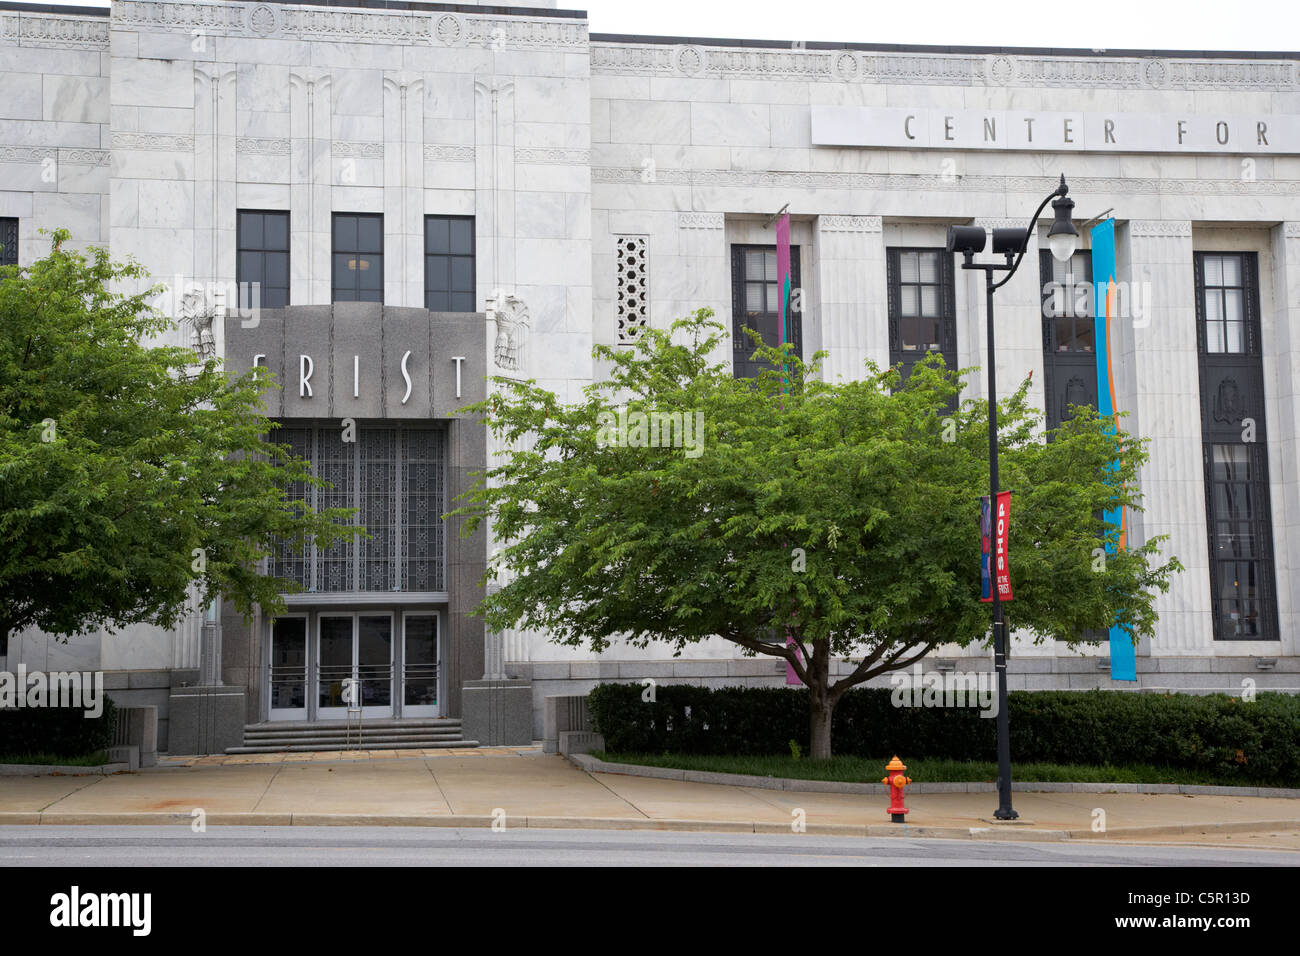 FRIST center for the visual arts building Nashville Tennessee USA Photo Stock